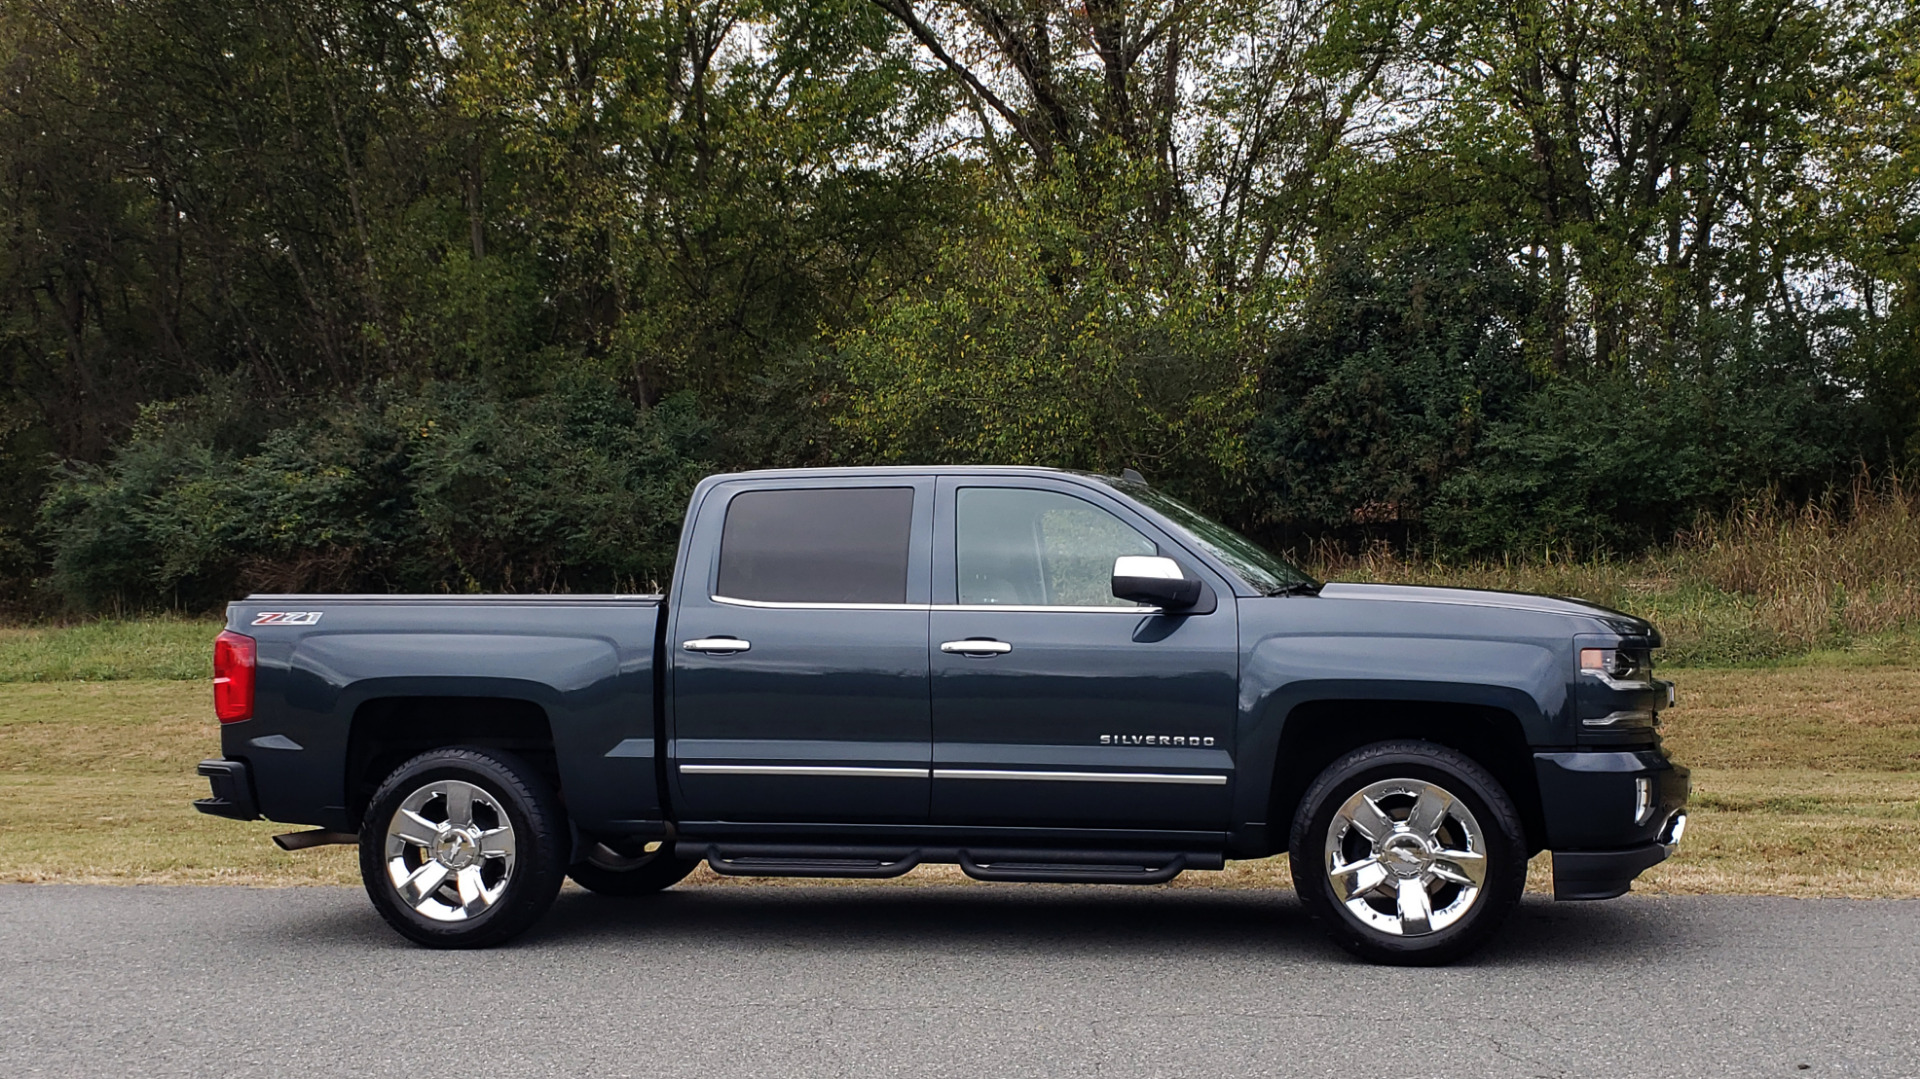 Used 2017 Chevrolet SILVERADO 1500 LTZ 4WD / NAV / BOSE / LEATHER / CAMERA / LOADED for sale Sold at Formula Imports in Charlotte NC 28227 26